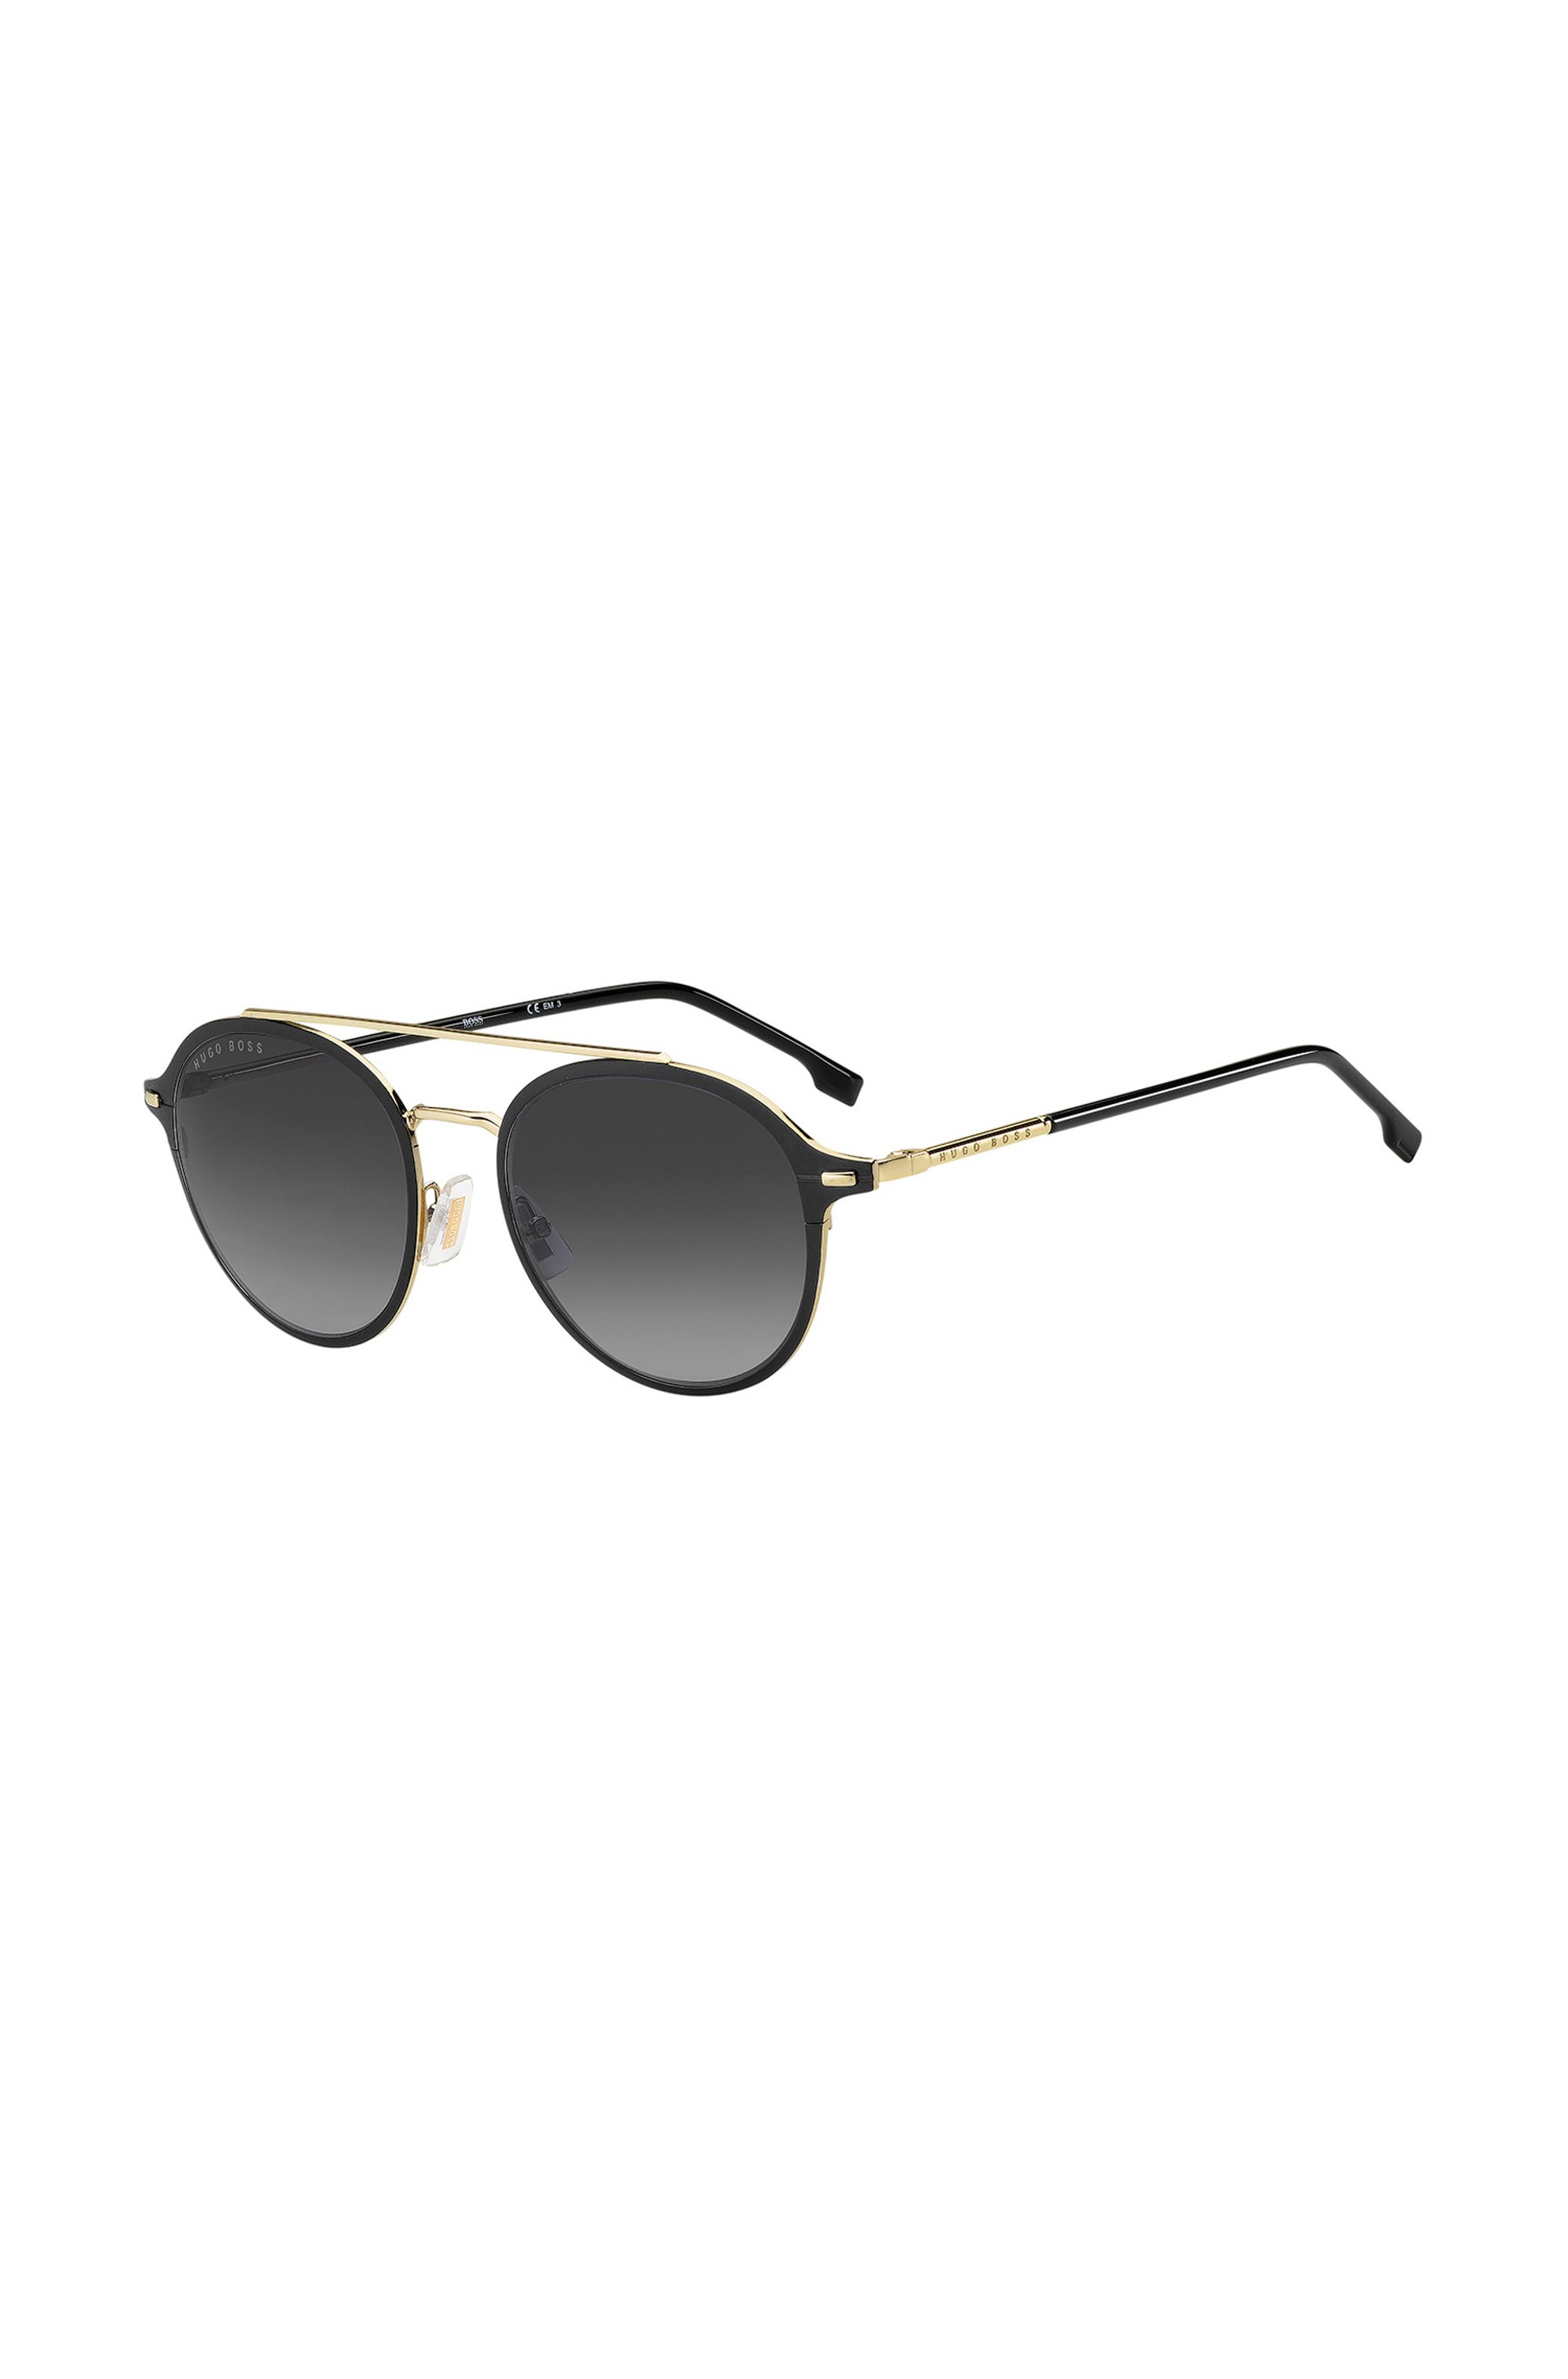 Black acetate sunglasses with gold-effect double bridge, Assorted-Pre-Pack